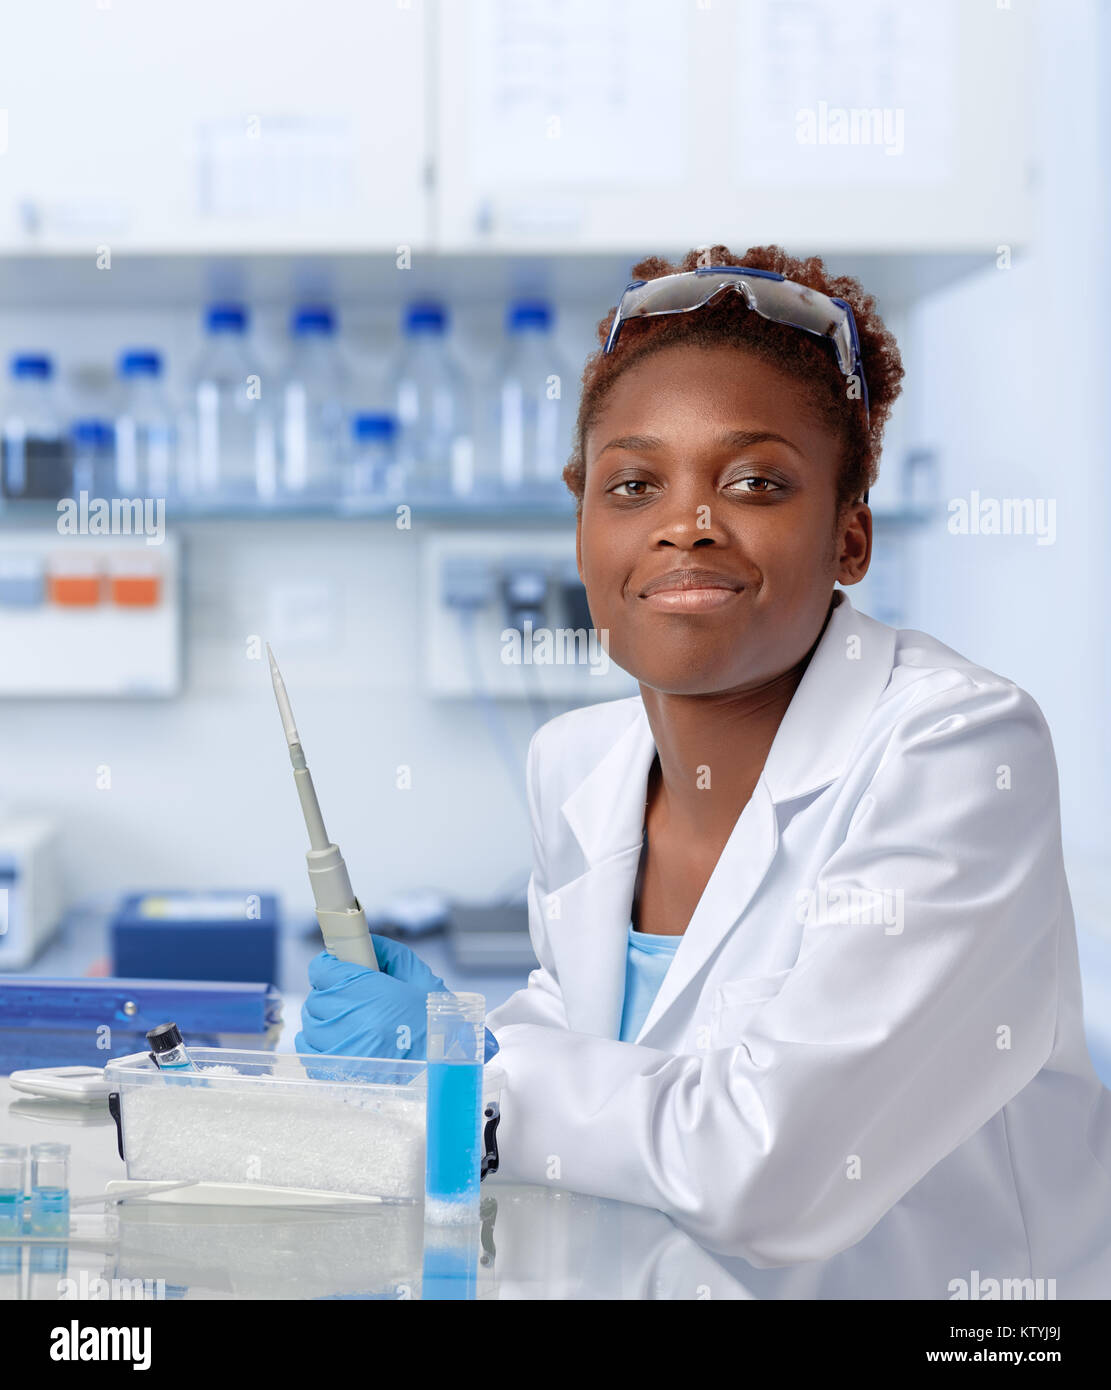 African-american scientist or graduate student in lab coat and protective gloves smiles at the camera - Stock Image